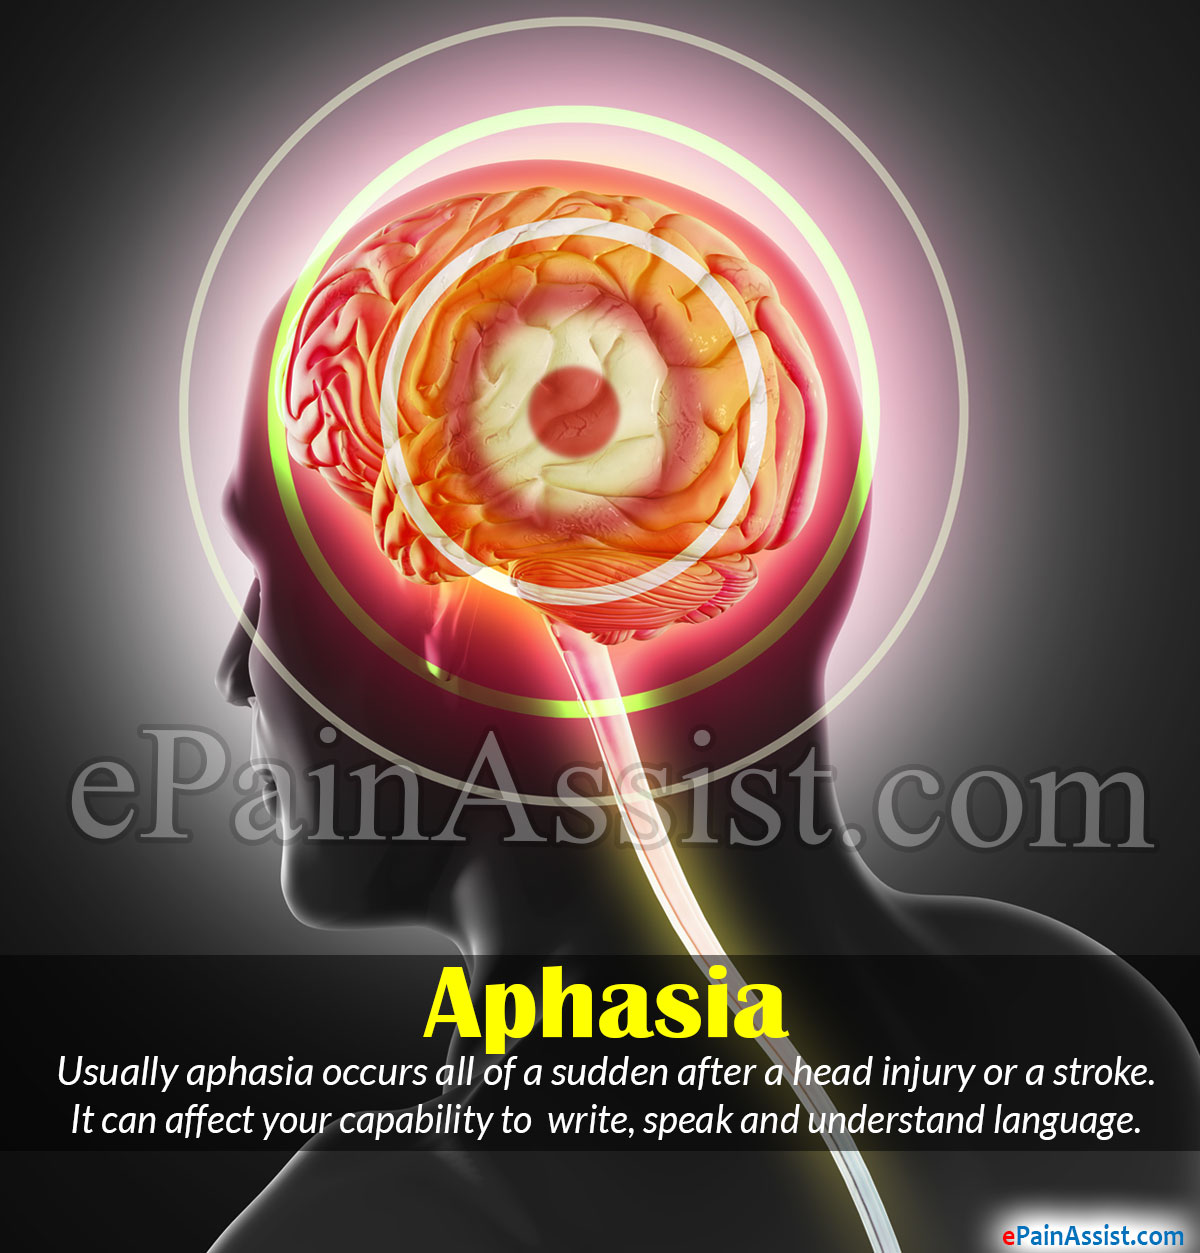 aphasia|causes|symptoms|types|treatment|recovery|prognosis|coping tips, Skeleton